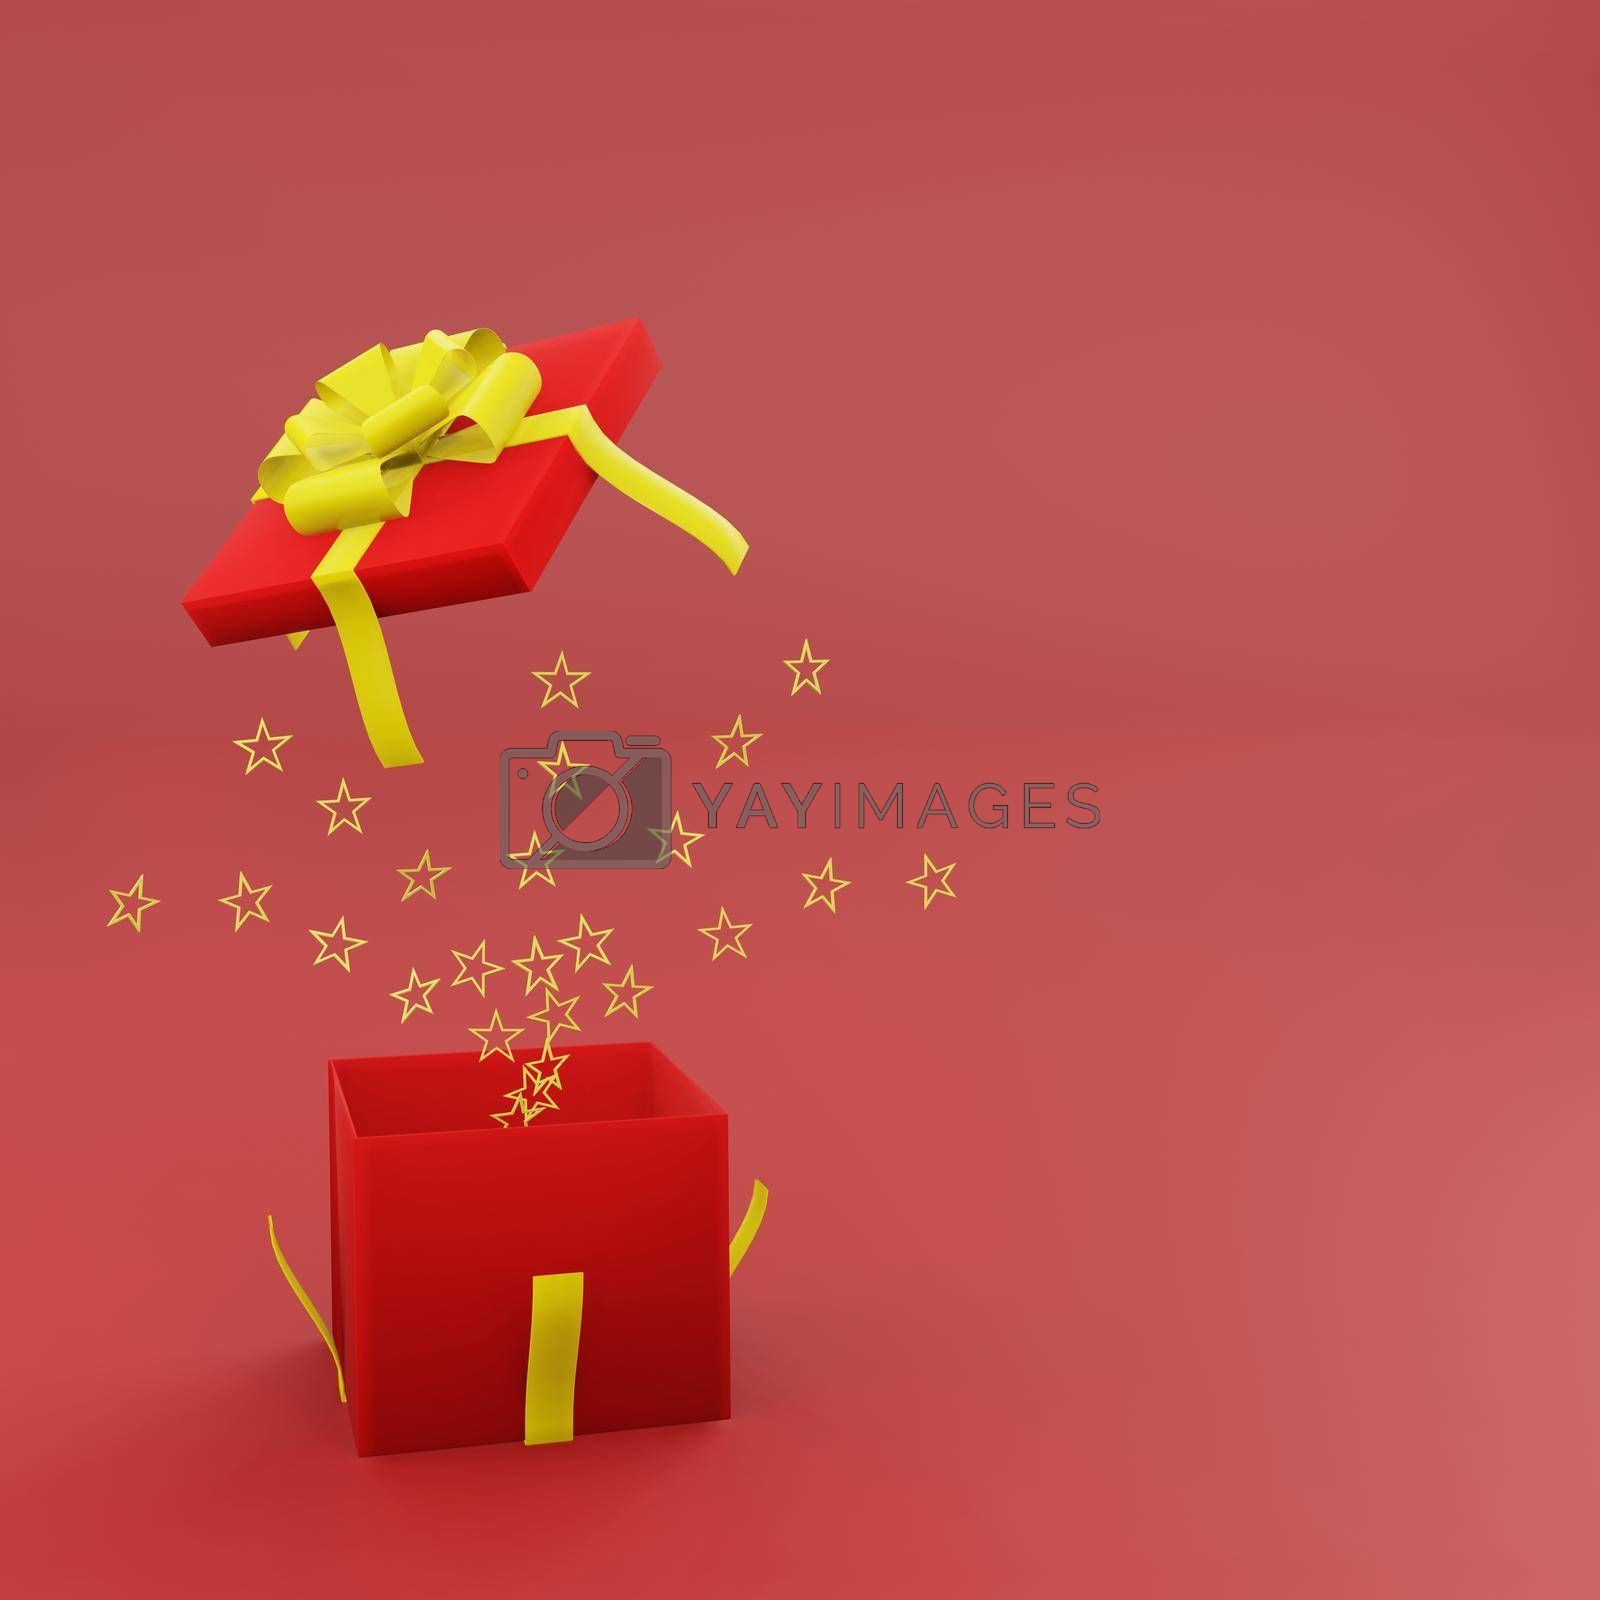 Royalty free image of Open red gift box with golden ribbon and spread star by eaglesky